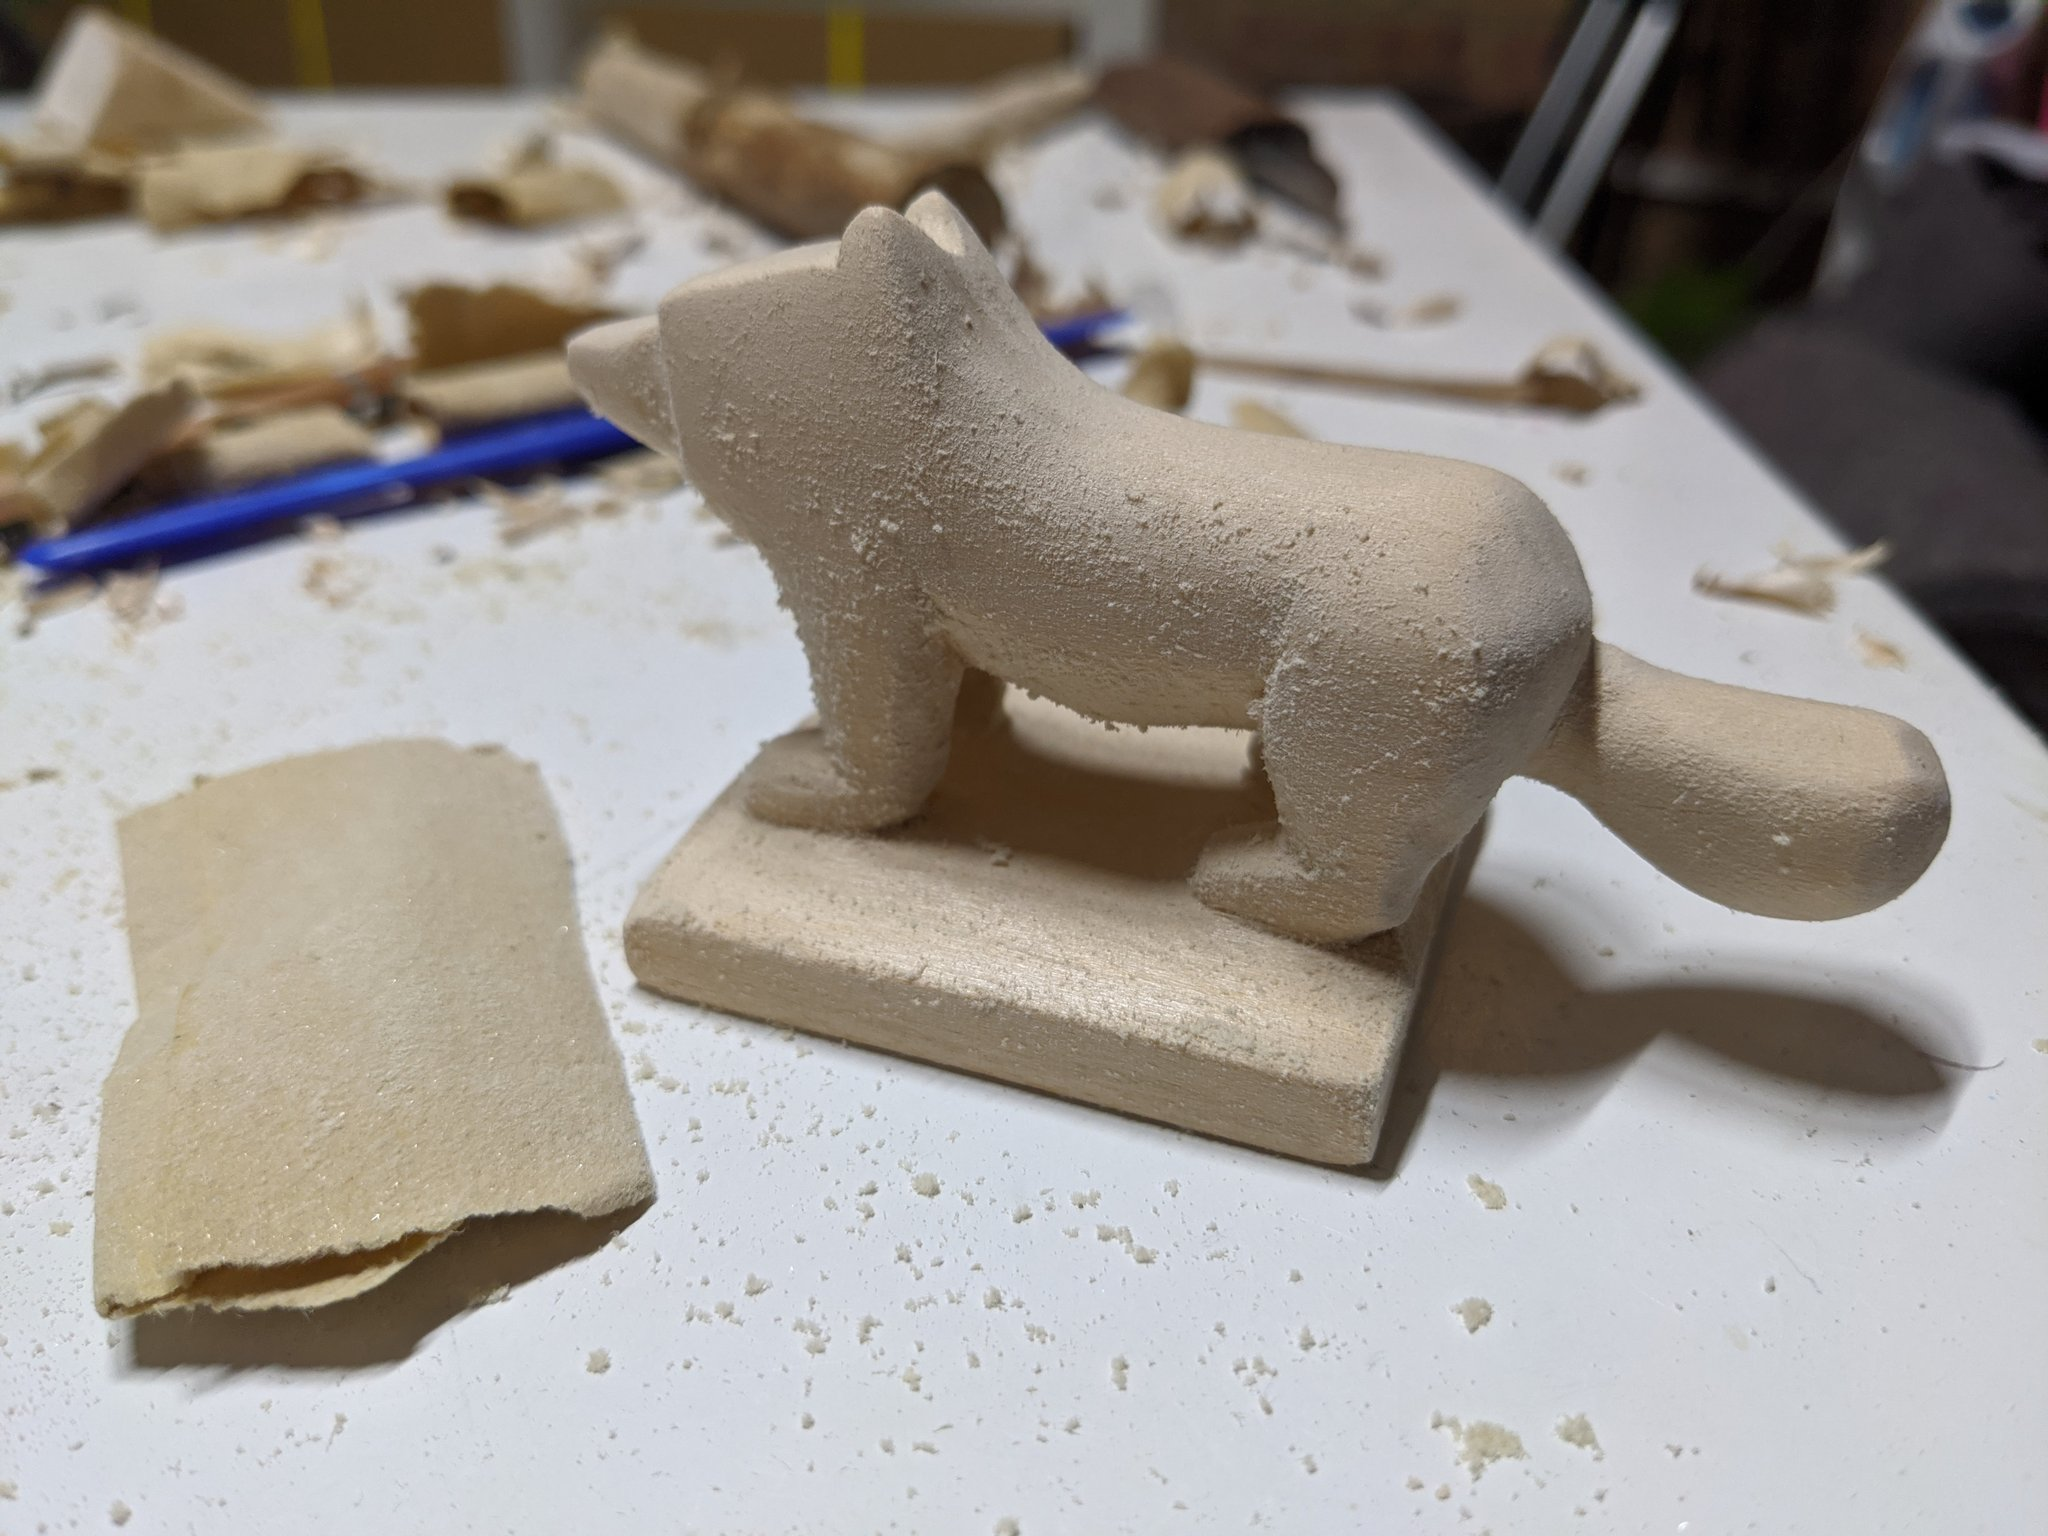 Sandpaper next to the dog, with the dog covered in a soft fluff like appearance after being sanded